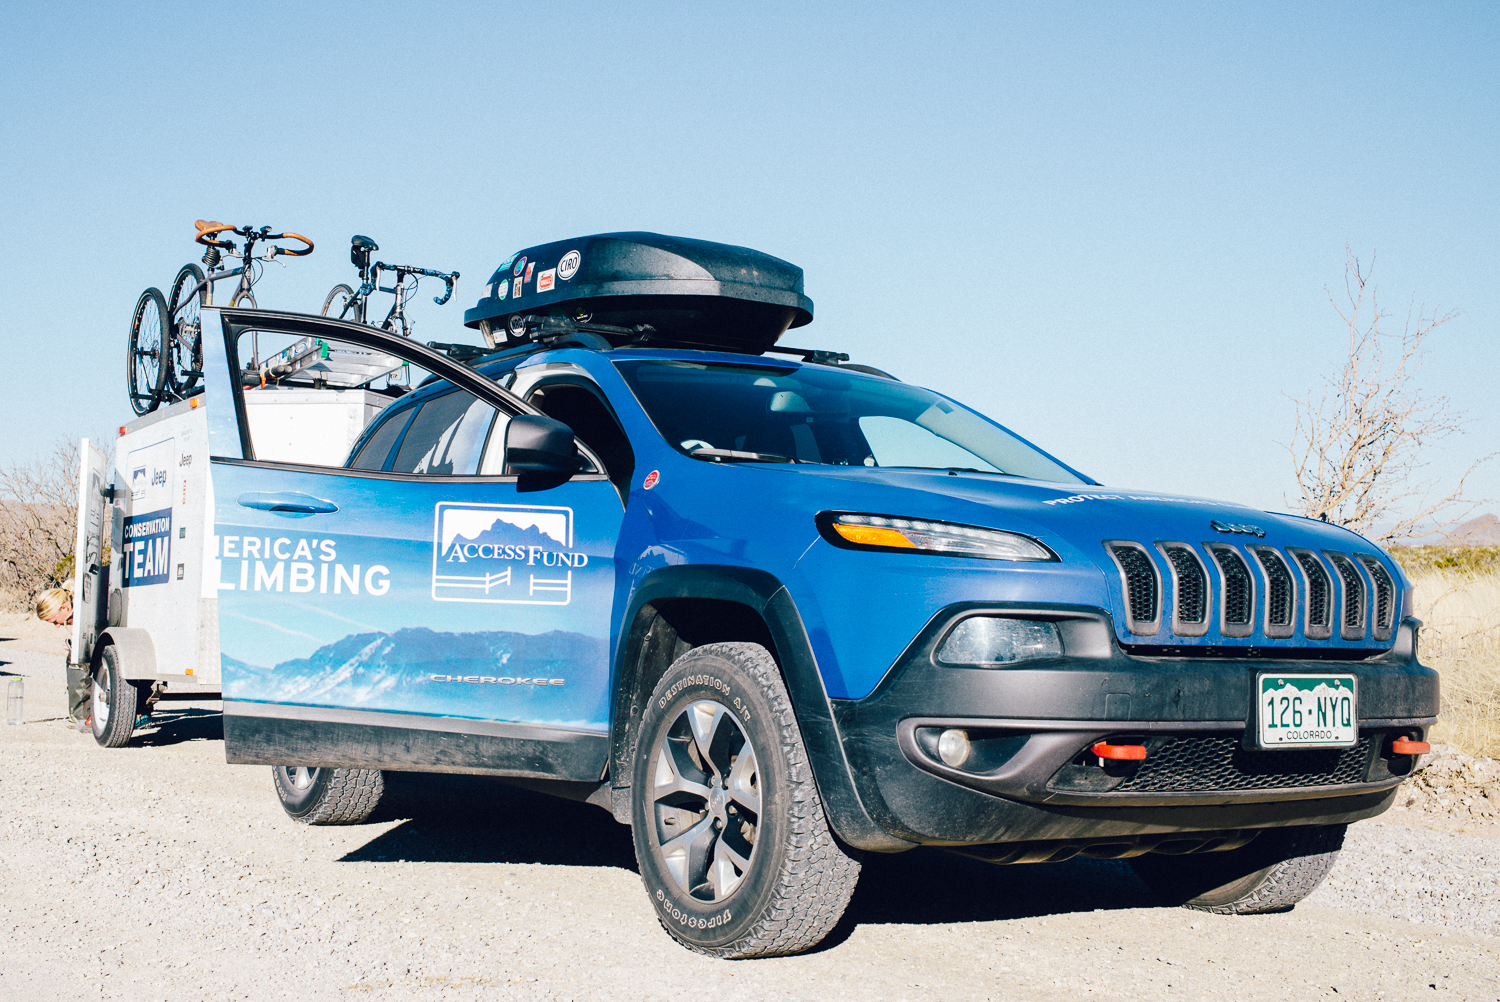 Mike and Amanda's transcontinental vehicle provided by Jeep. Both Mike and Amanda are part of Access Fund's Conversation Team, which entails them going around the country to National and State parks to educate visitors as well as performing conservation work to help preserve the parks. Michael Lim Photography 2015 ©